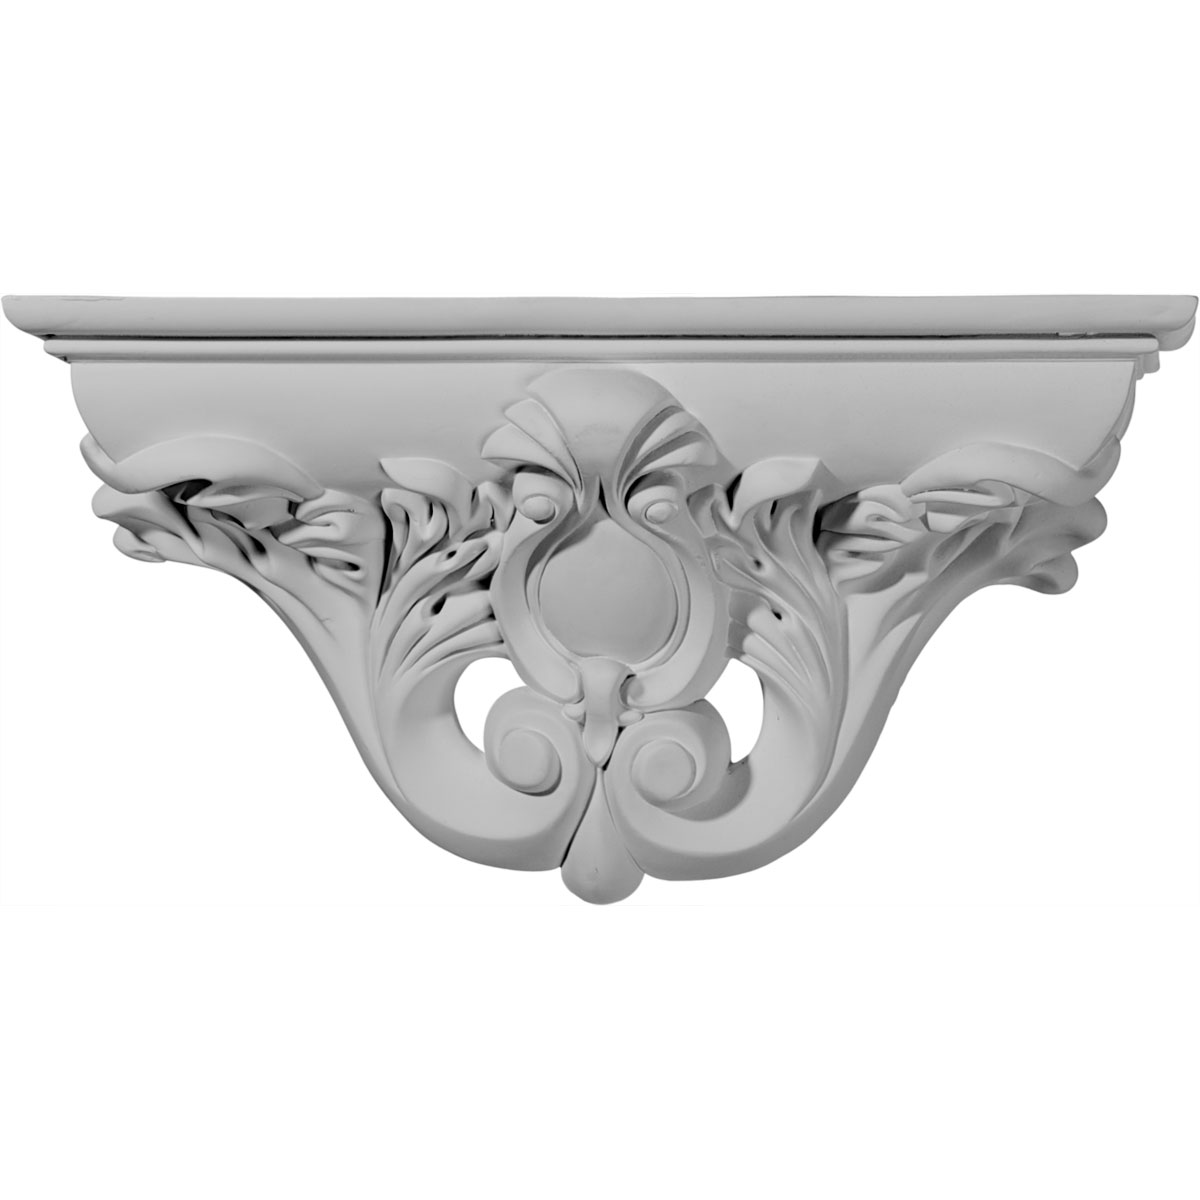 decorative moldings corbel decor corbels more architectural accents than braided